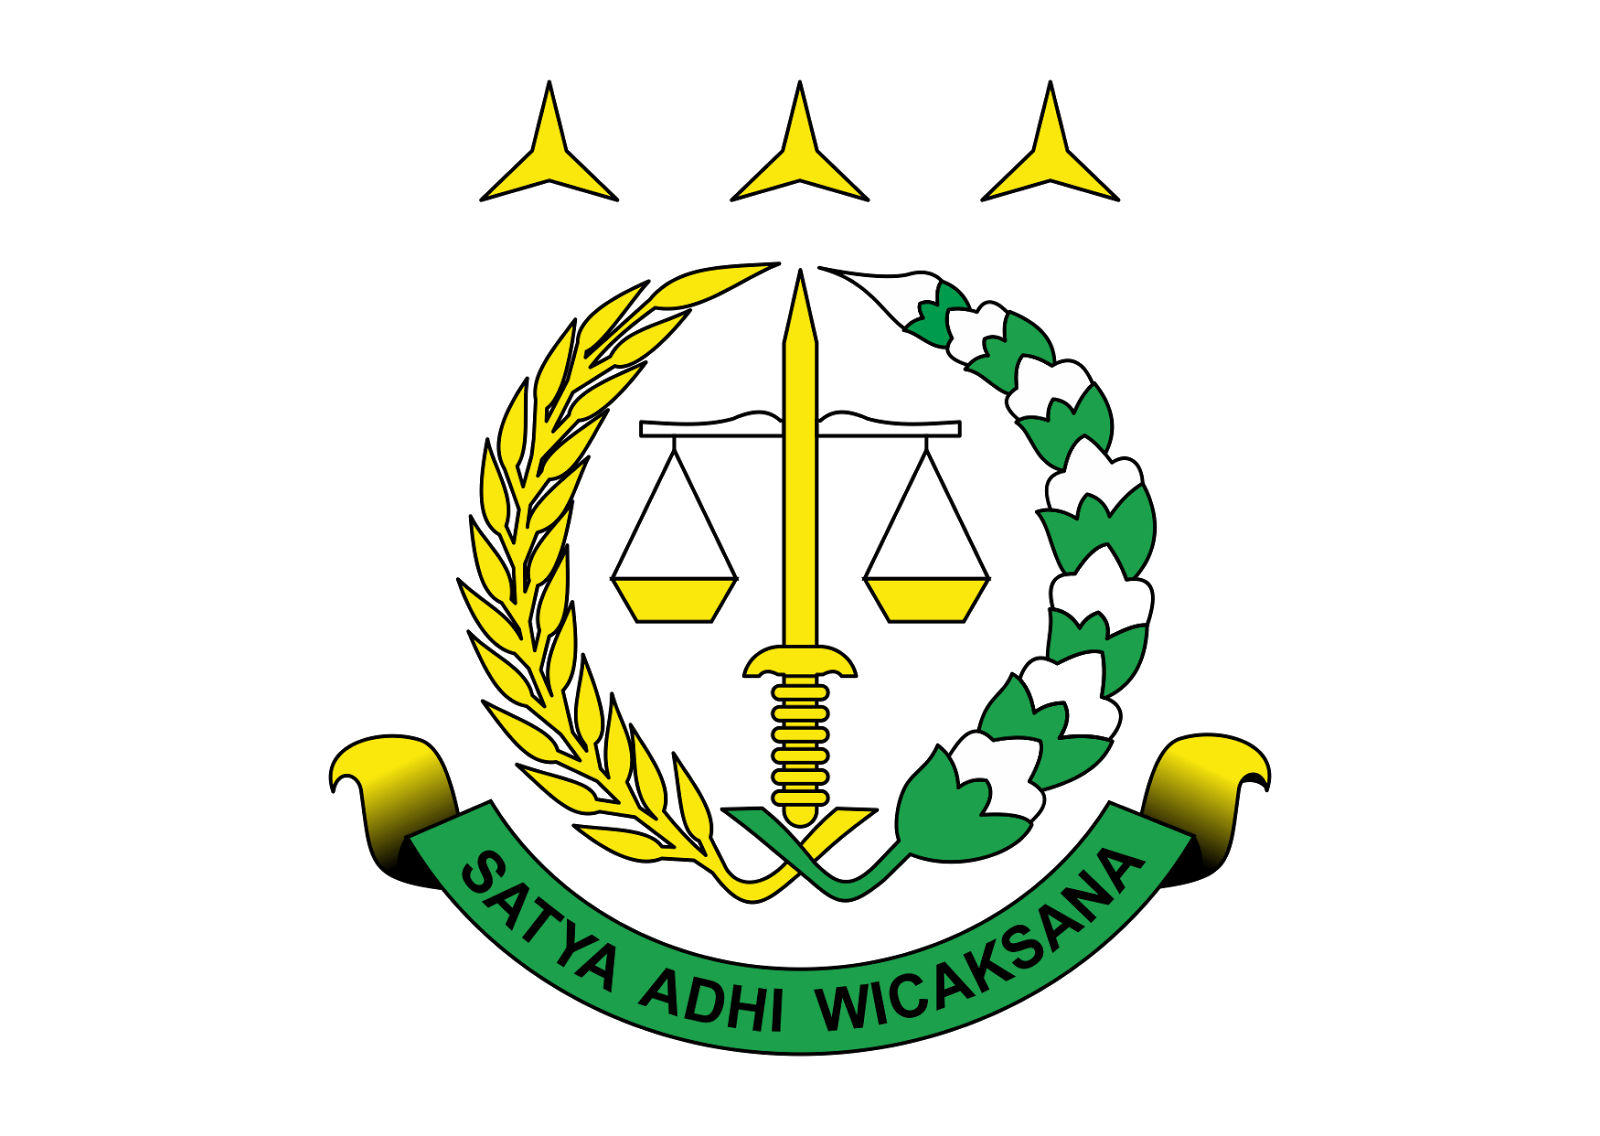 Logo Kejaksaan Agung RI Vector Full Color